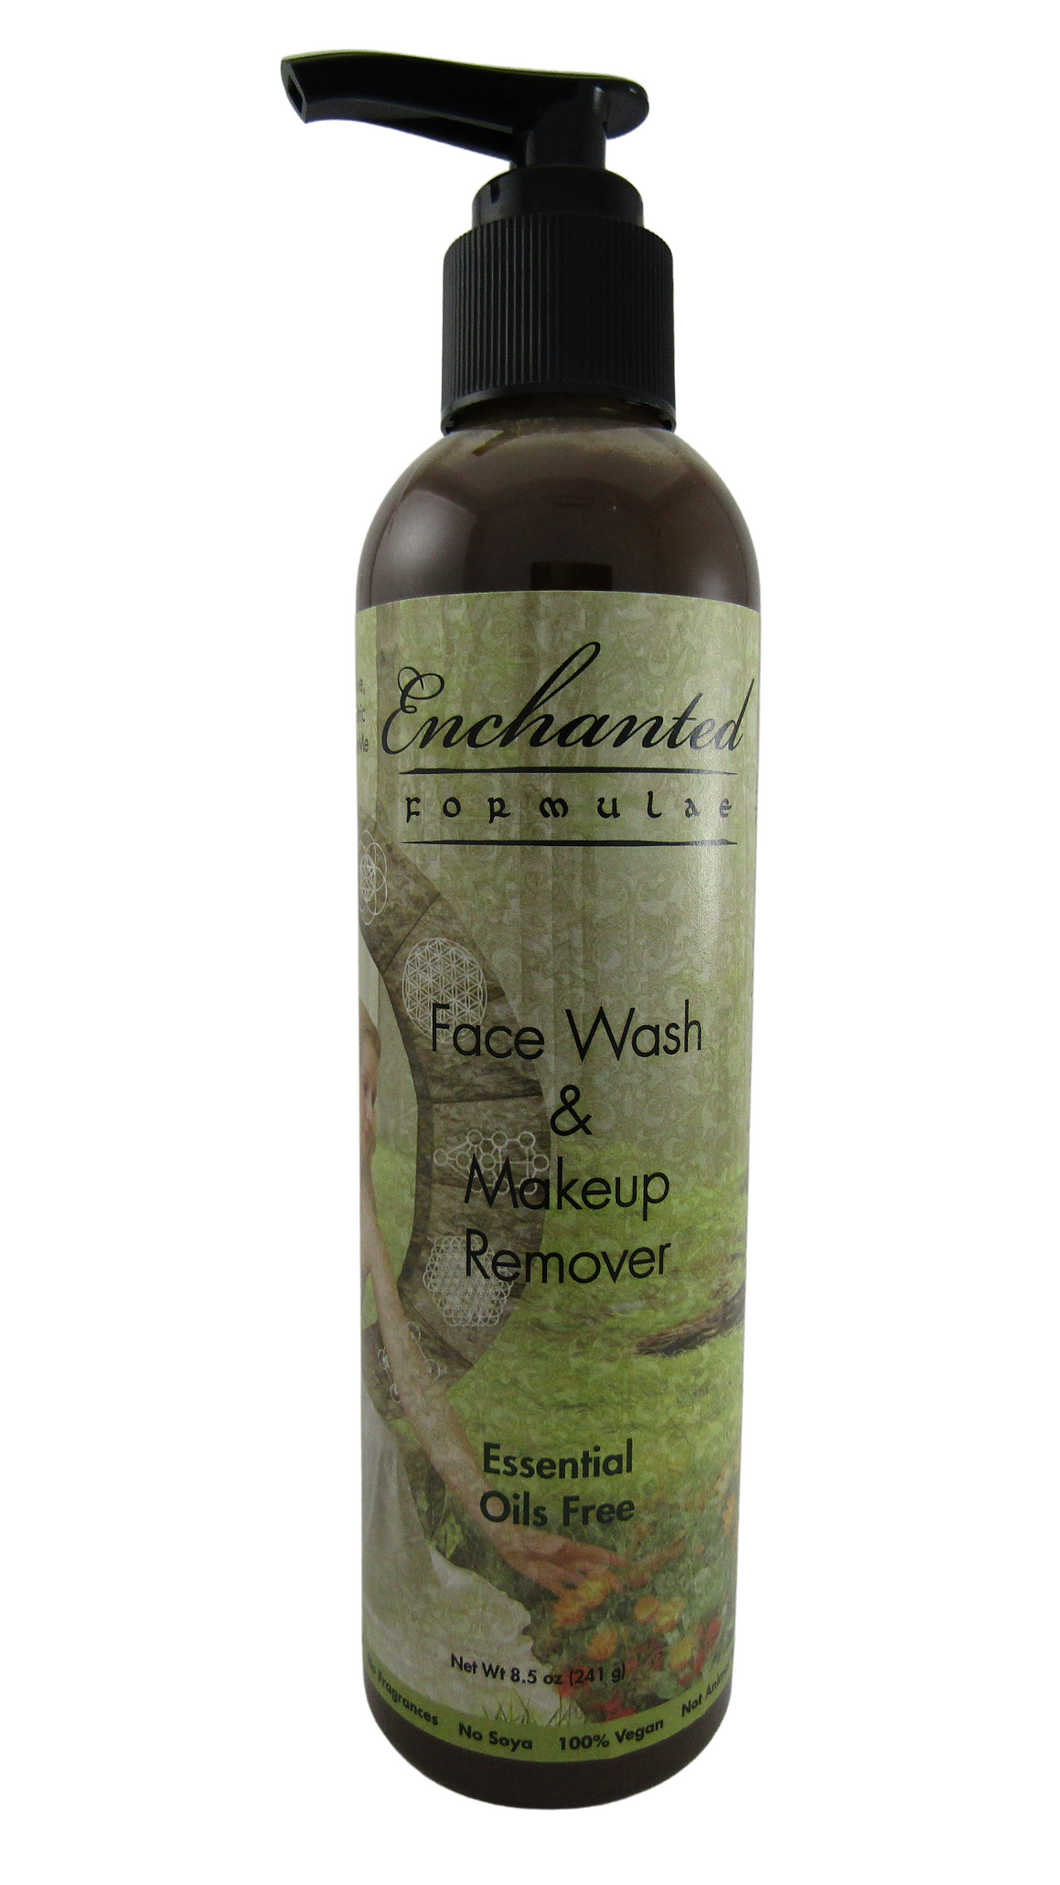 NORMAL TO HIGHLY SENSITIVE SKIN FACE WASH & MAKEUP REMOVER ESSENTIAL OILS FREE